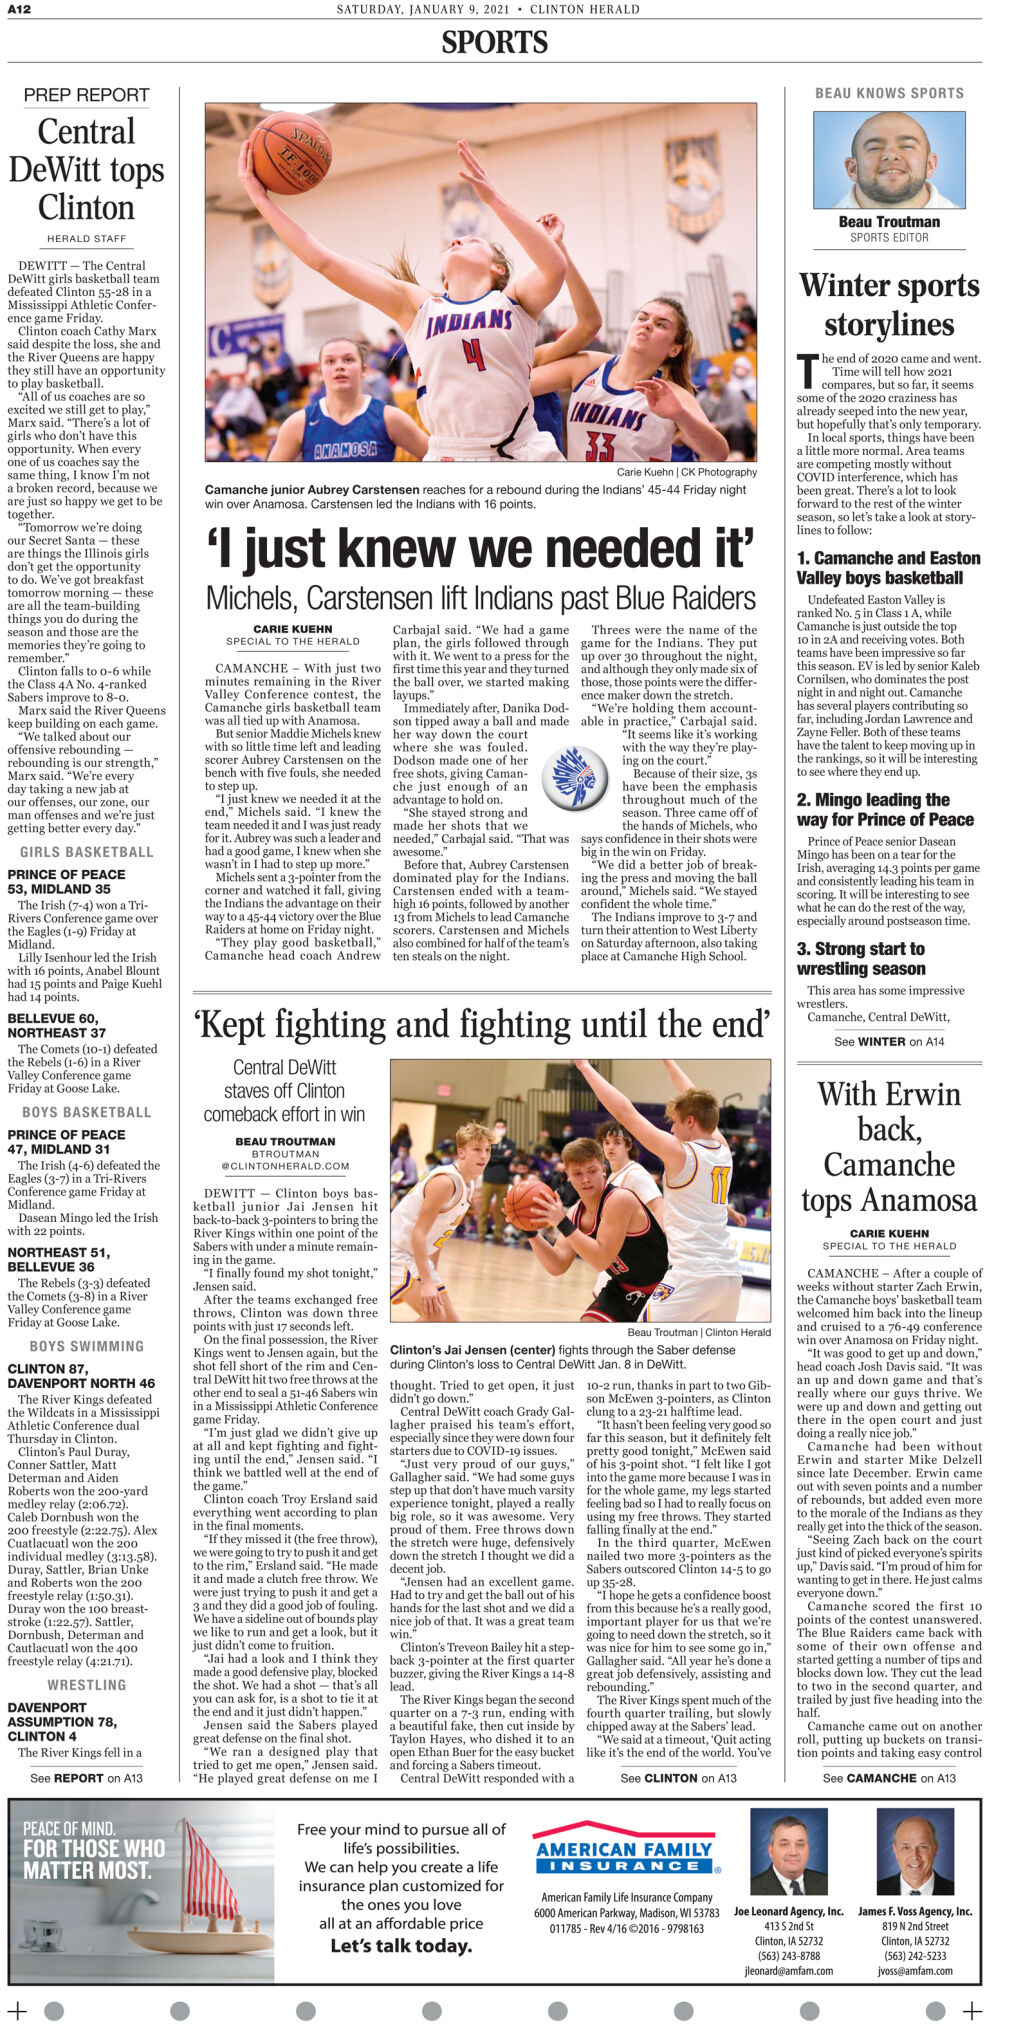 Front Sports page for January 9, 2021